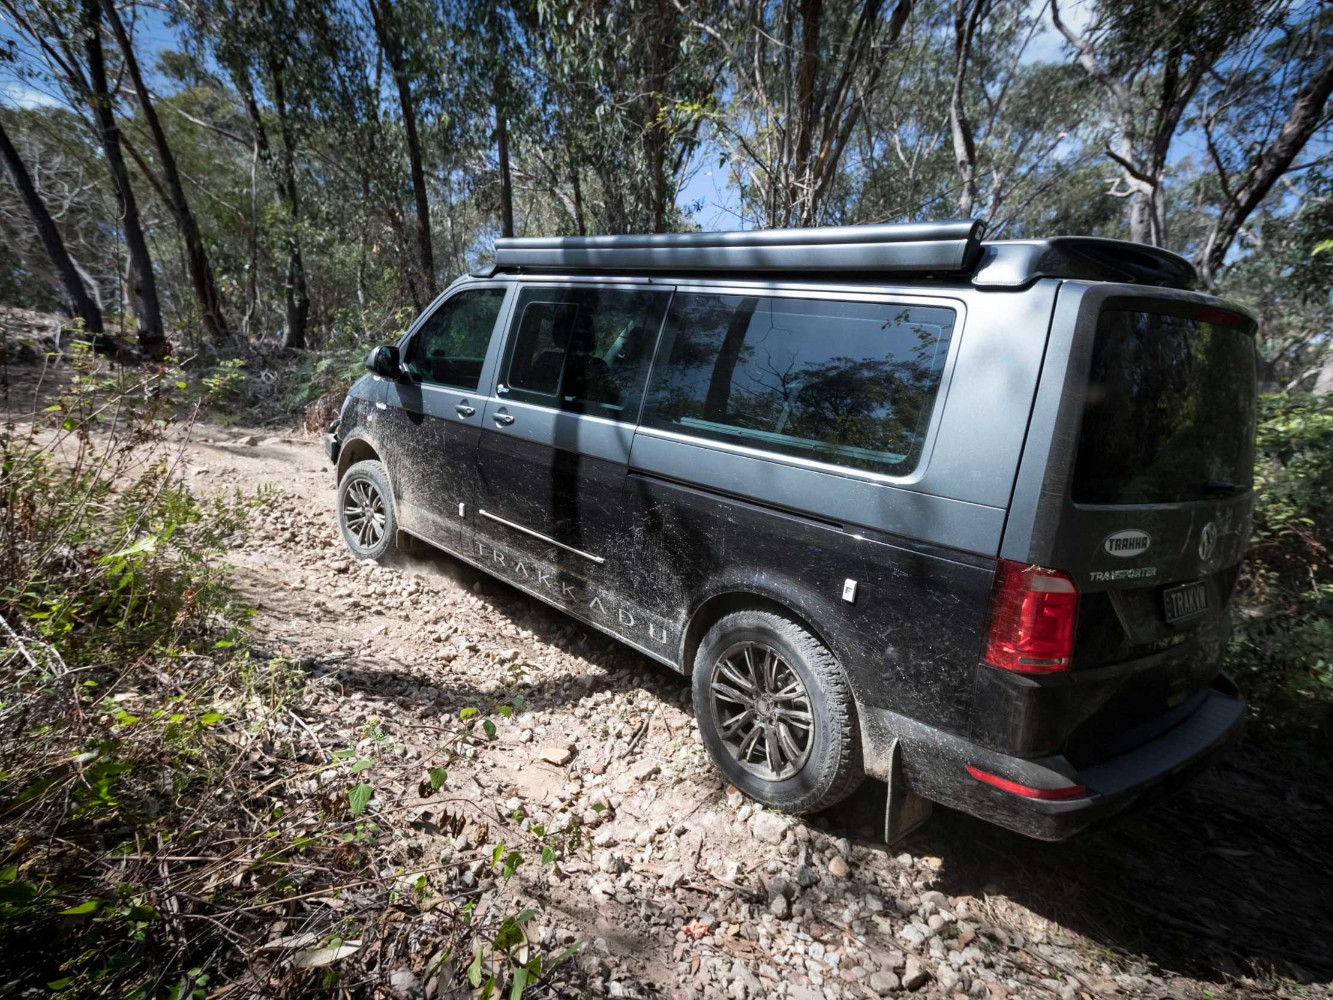 Trakkadu At Camper Van Shows That A Vw Transporter Can Do Off Roading Autoevolution